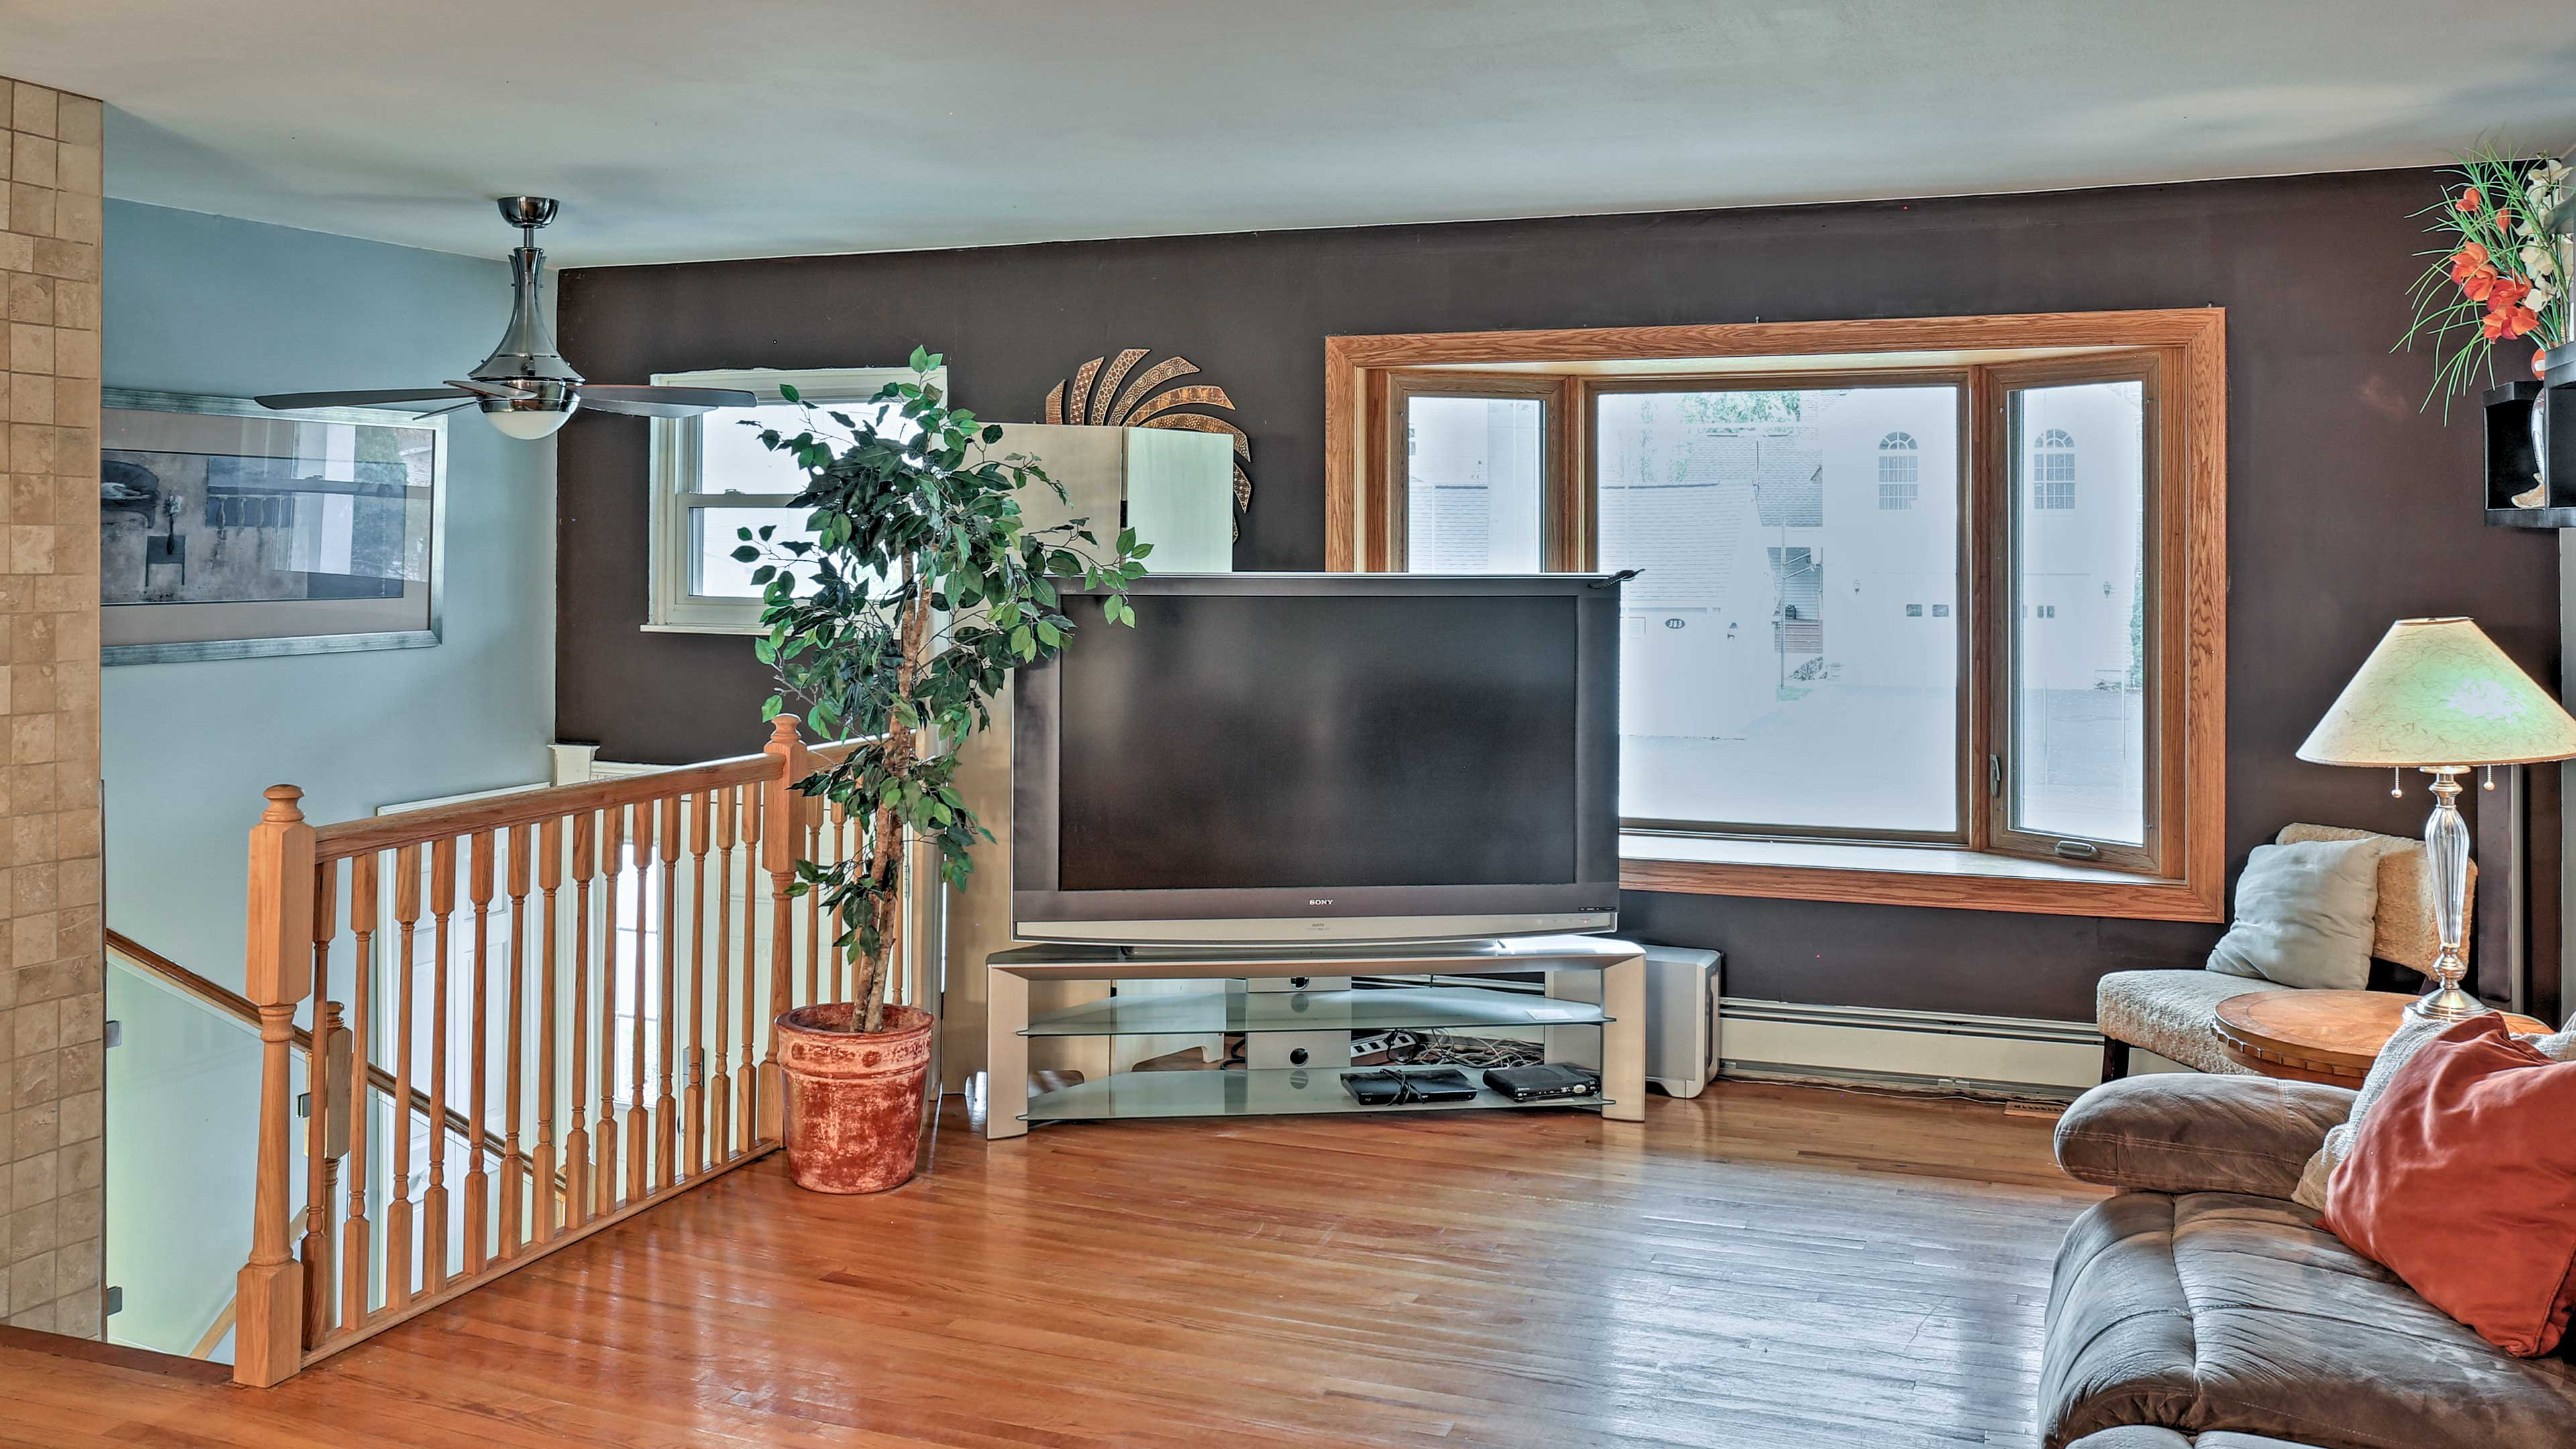 Watch your favorite DVD on the 55-inch TV upstairs.